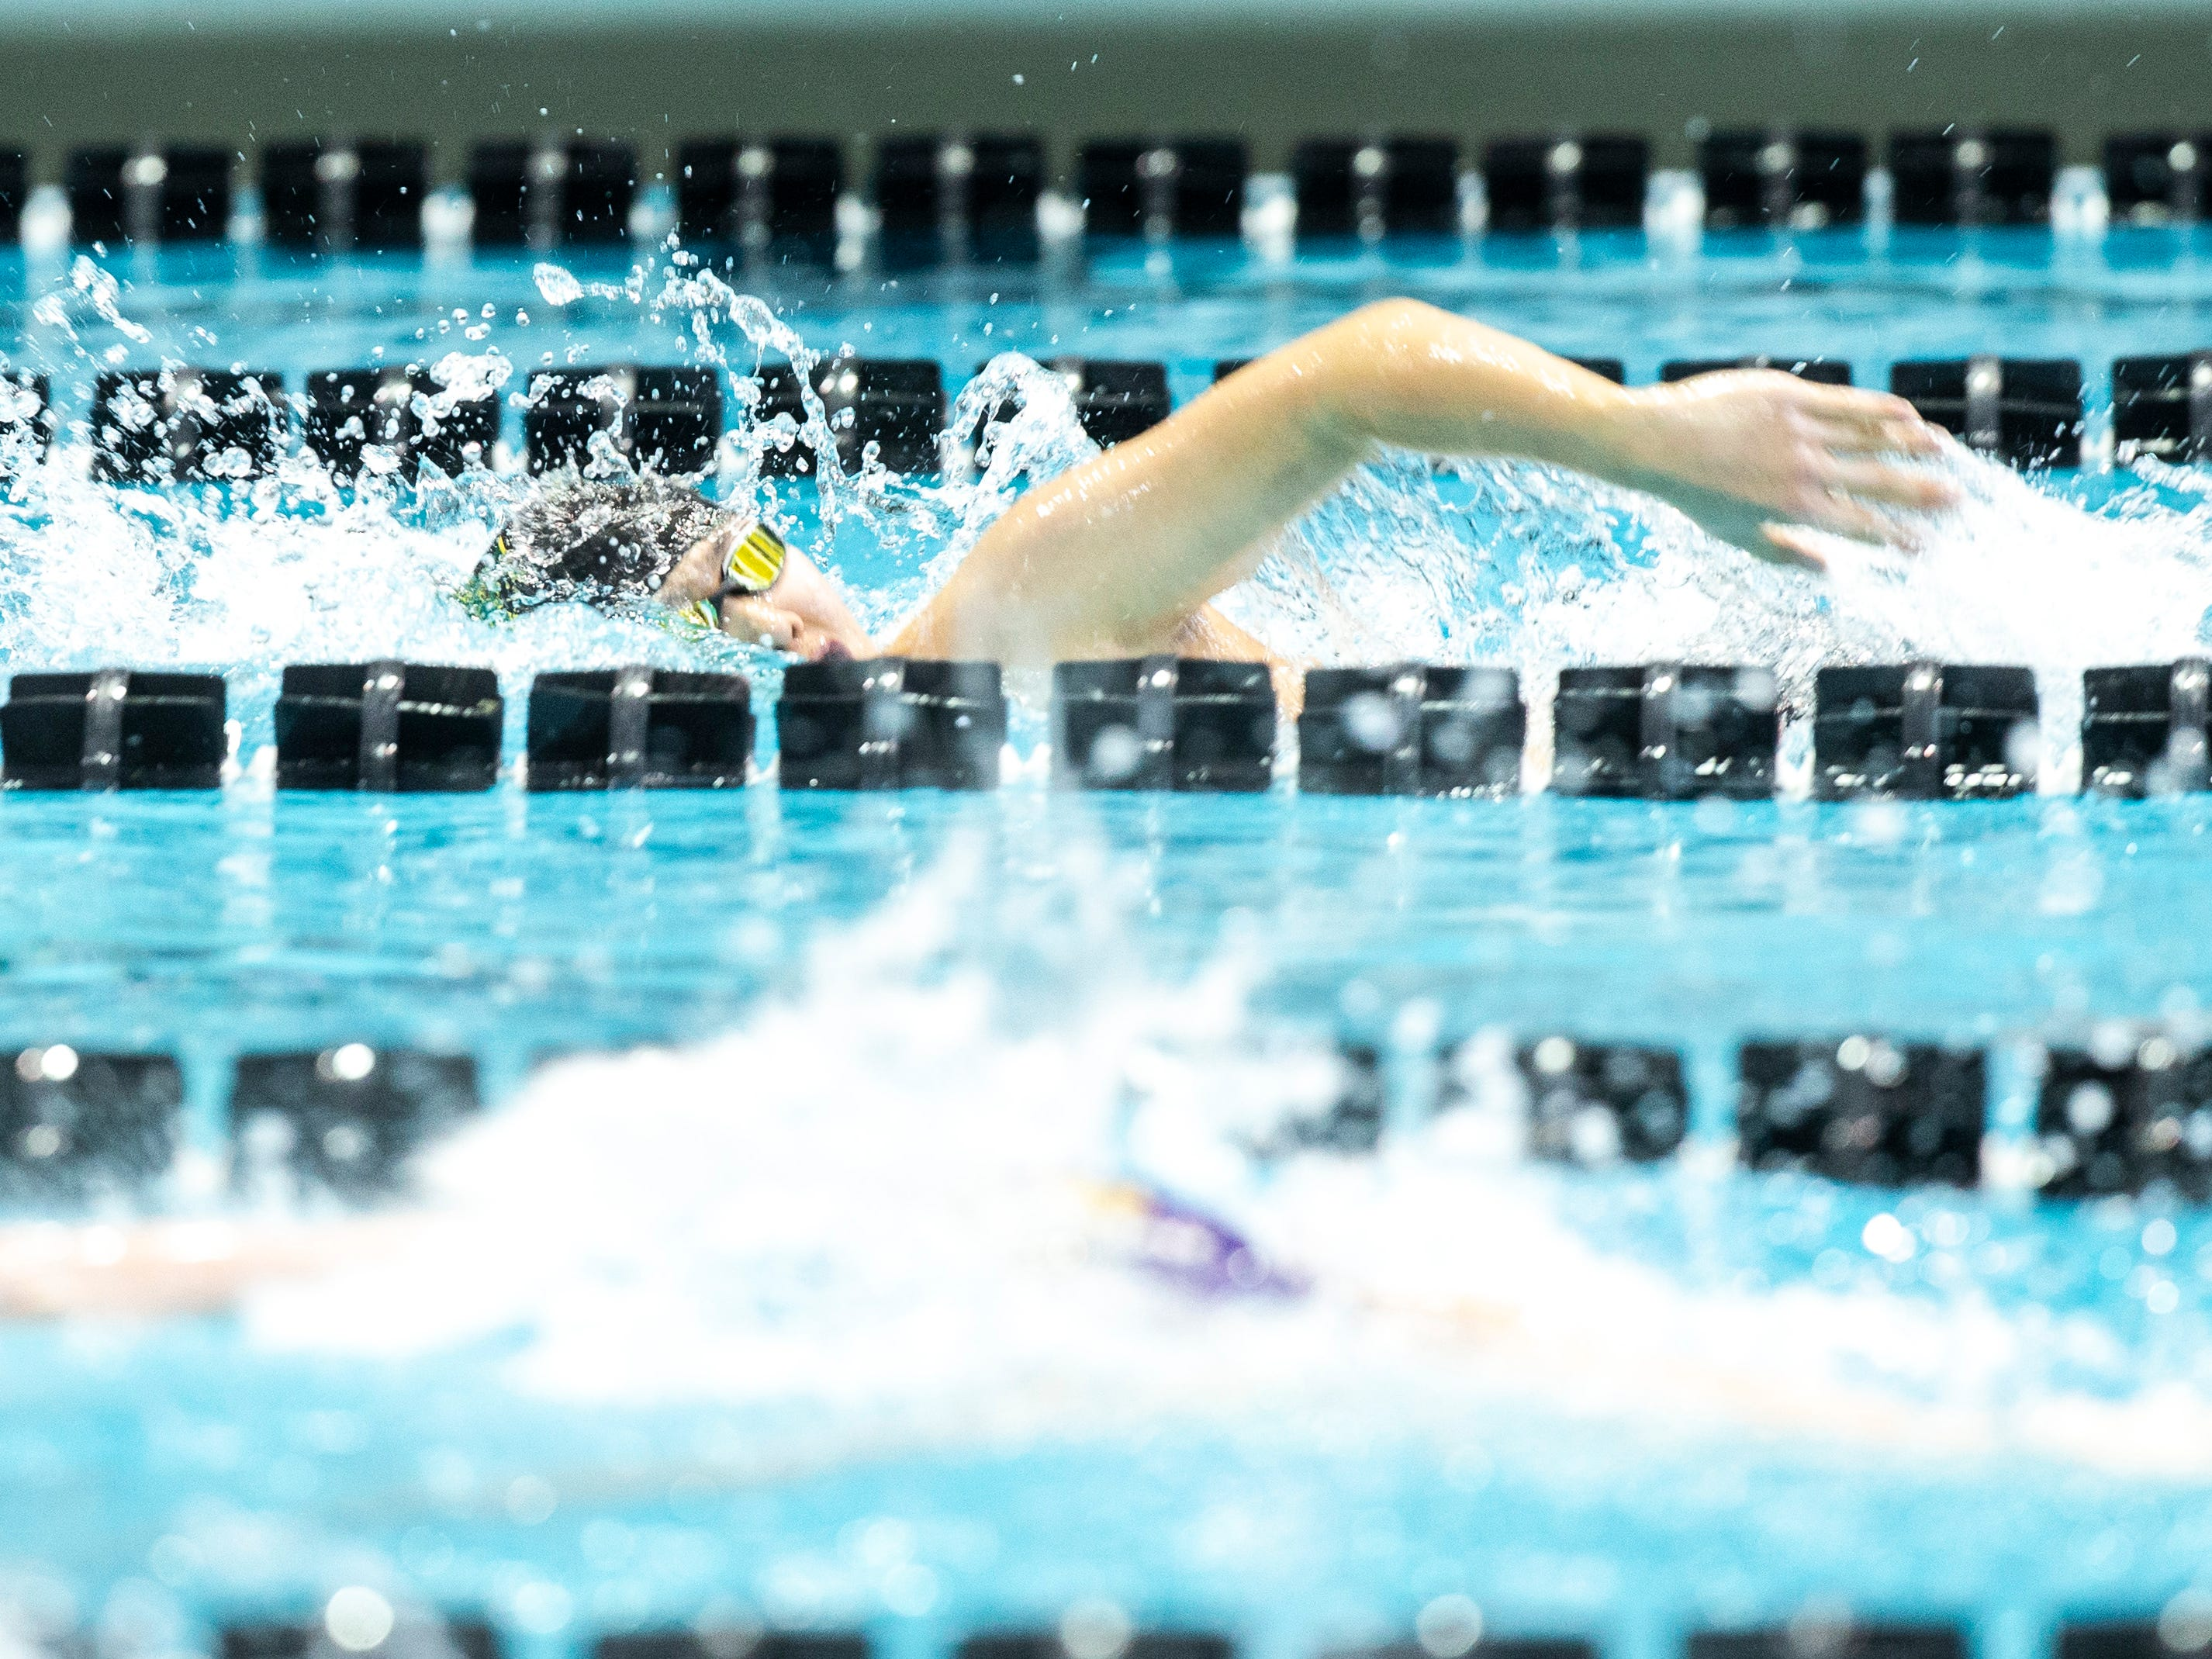 Iowa City West junior Michael Kimball competes in the 100 yard freestyle during the Iowa boys' state swimming regional championship meet on Saturday, Feb. 9, 2019 at Campus Recreation and Wellness Center on the University of Iowa campus in Iowa City, Iowa. Kimball finished 20th overall, with a time of 48.48.